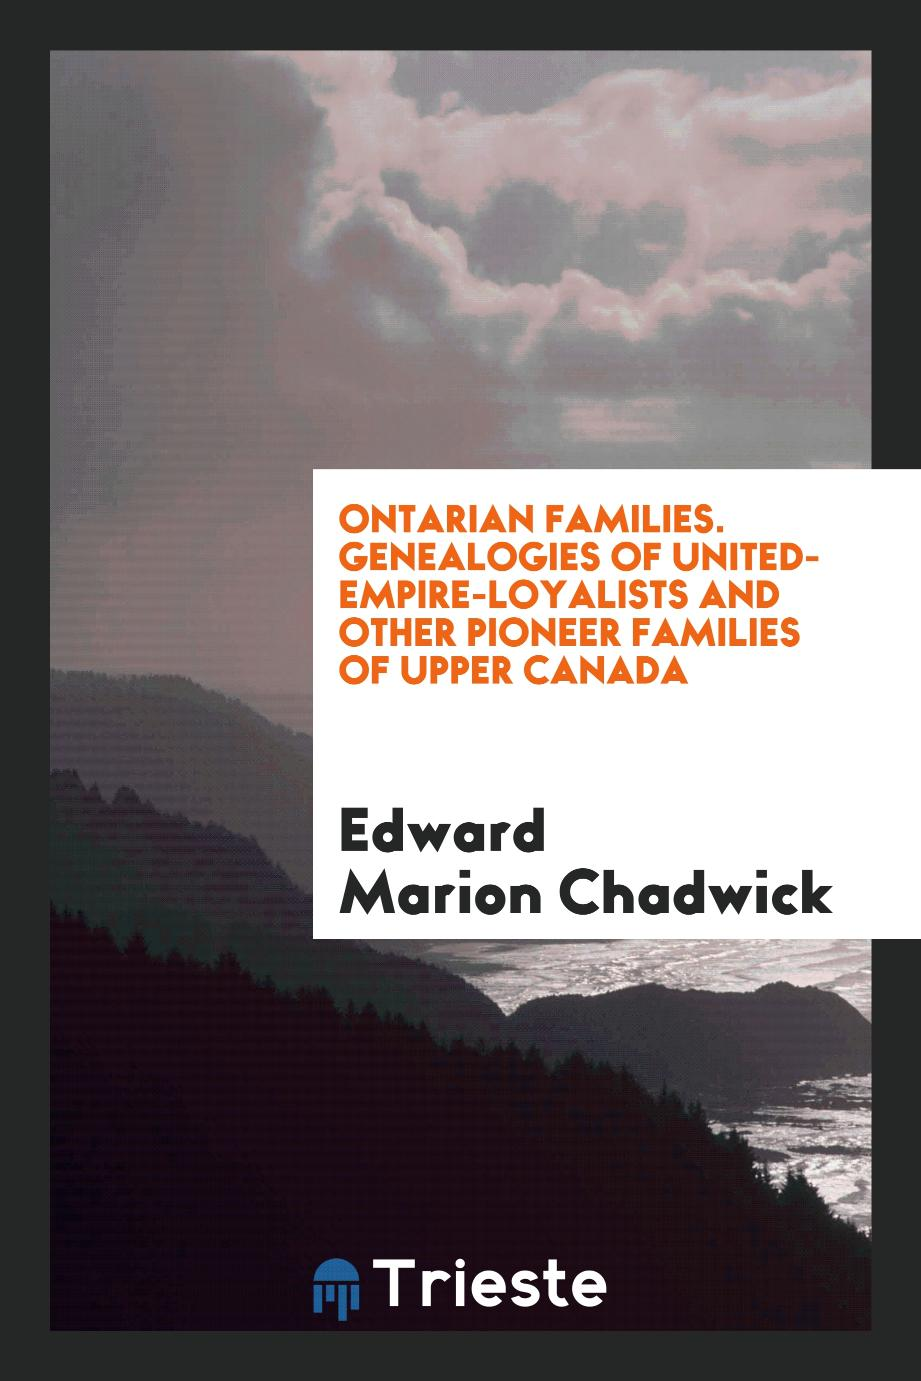 Ontarian Families. Genealogies of United-Empire-Loyalists and Other Pioneer Families of Upper Canada